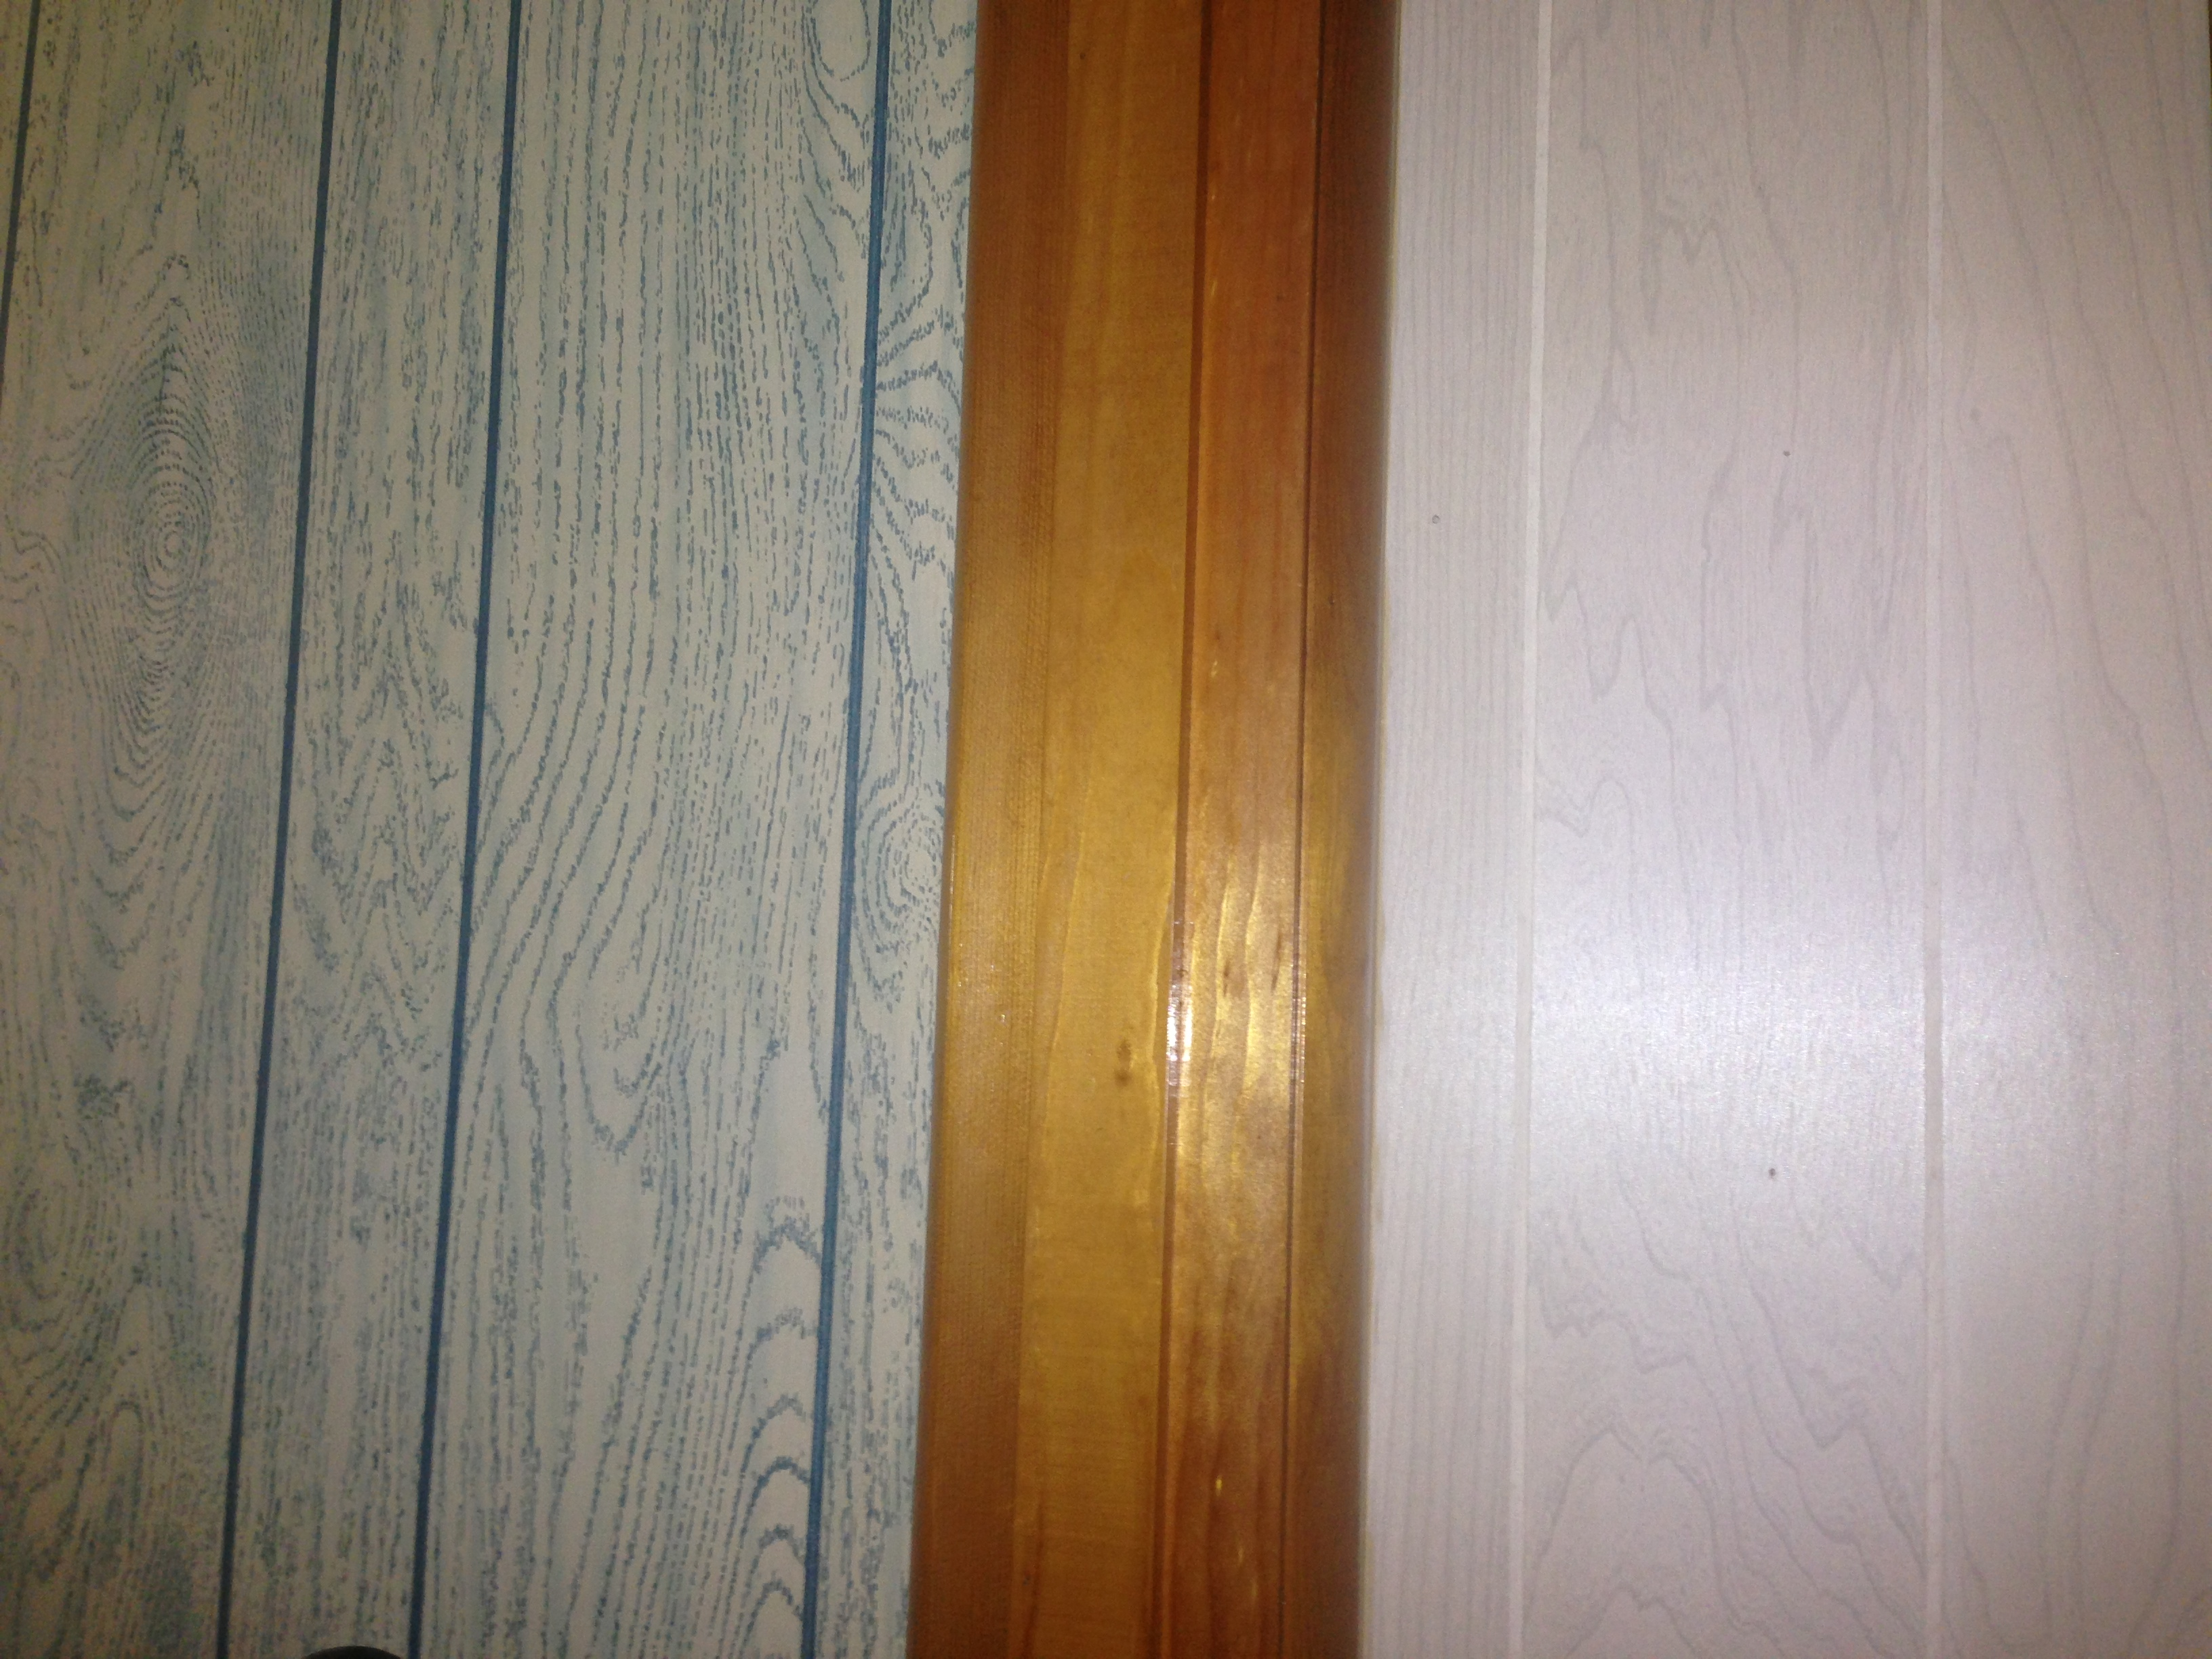 Wonderful image of  wood trim must stay so you'll see us trying to work around that with #703F18 color and 3264x2448 pixels